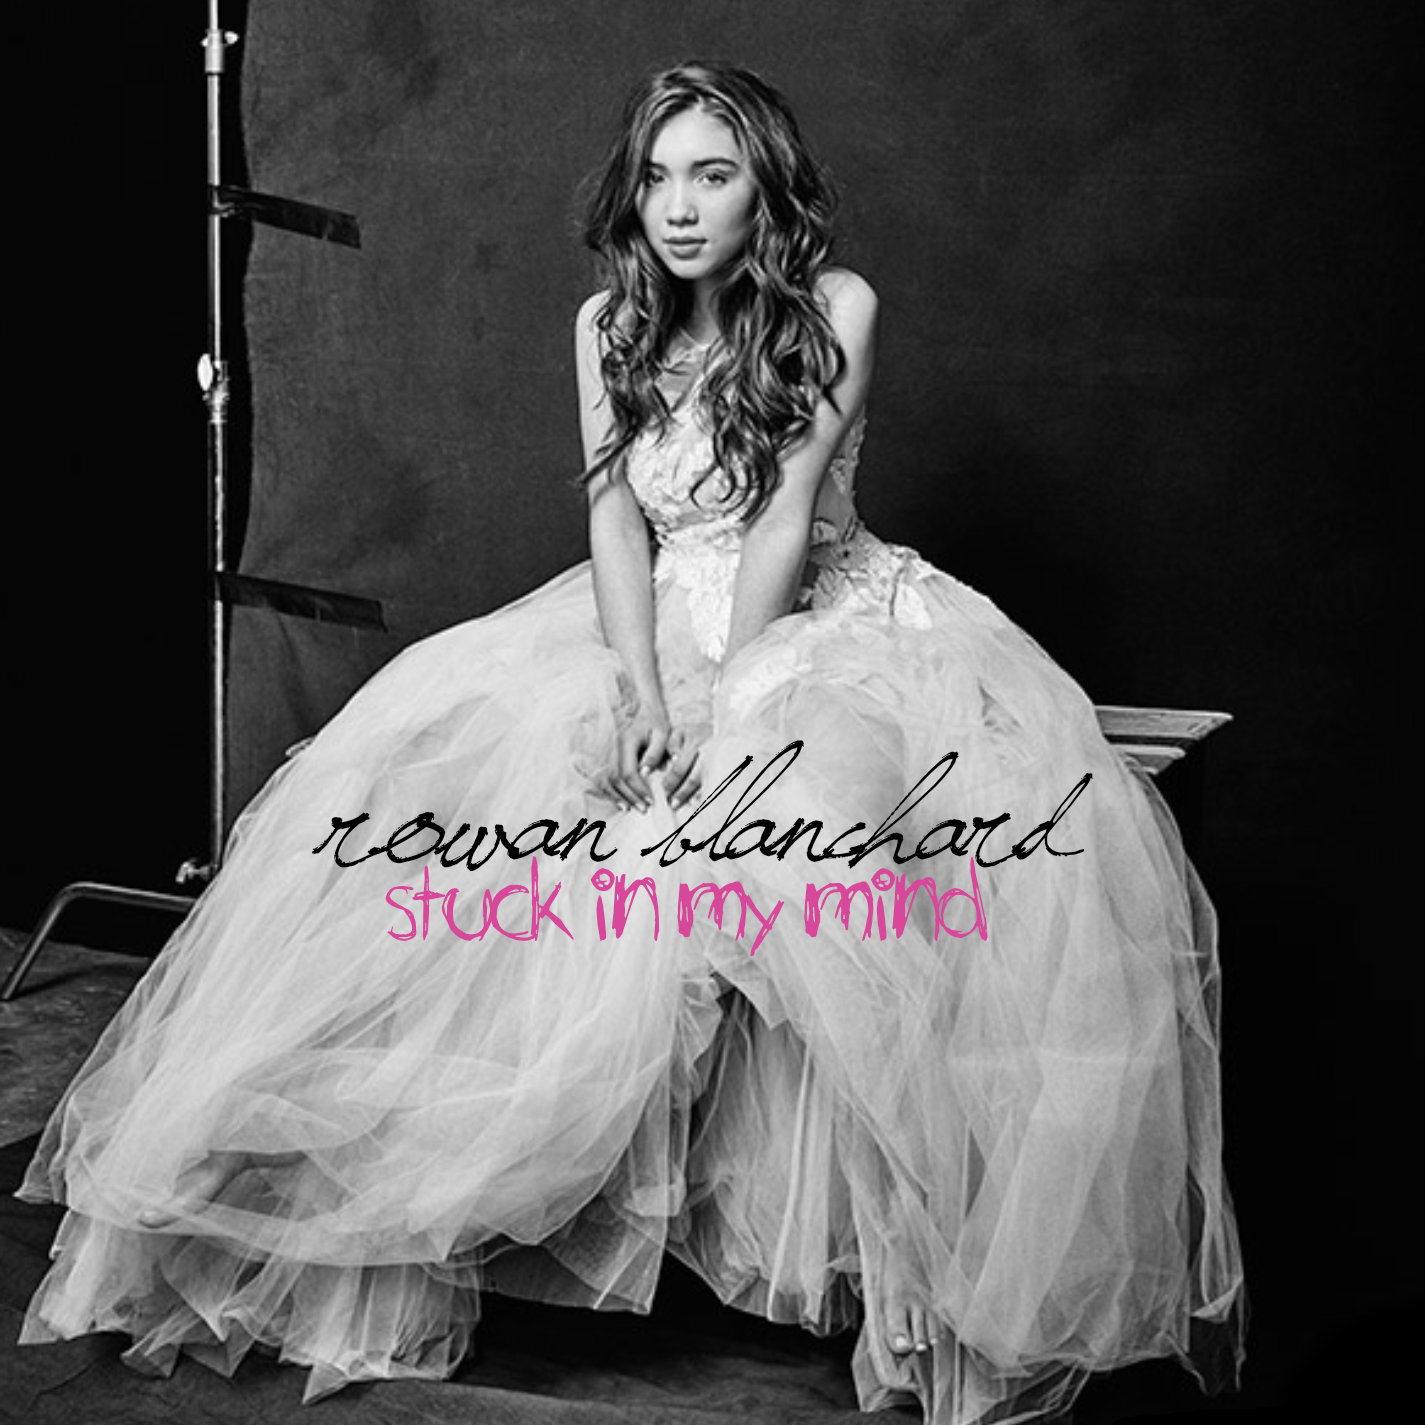 Stuck In My Mind (Rowan Blanchard album)